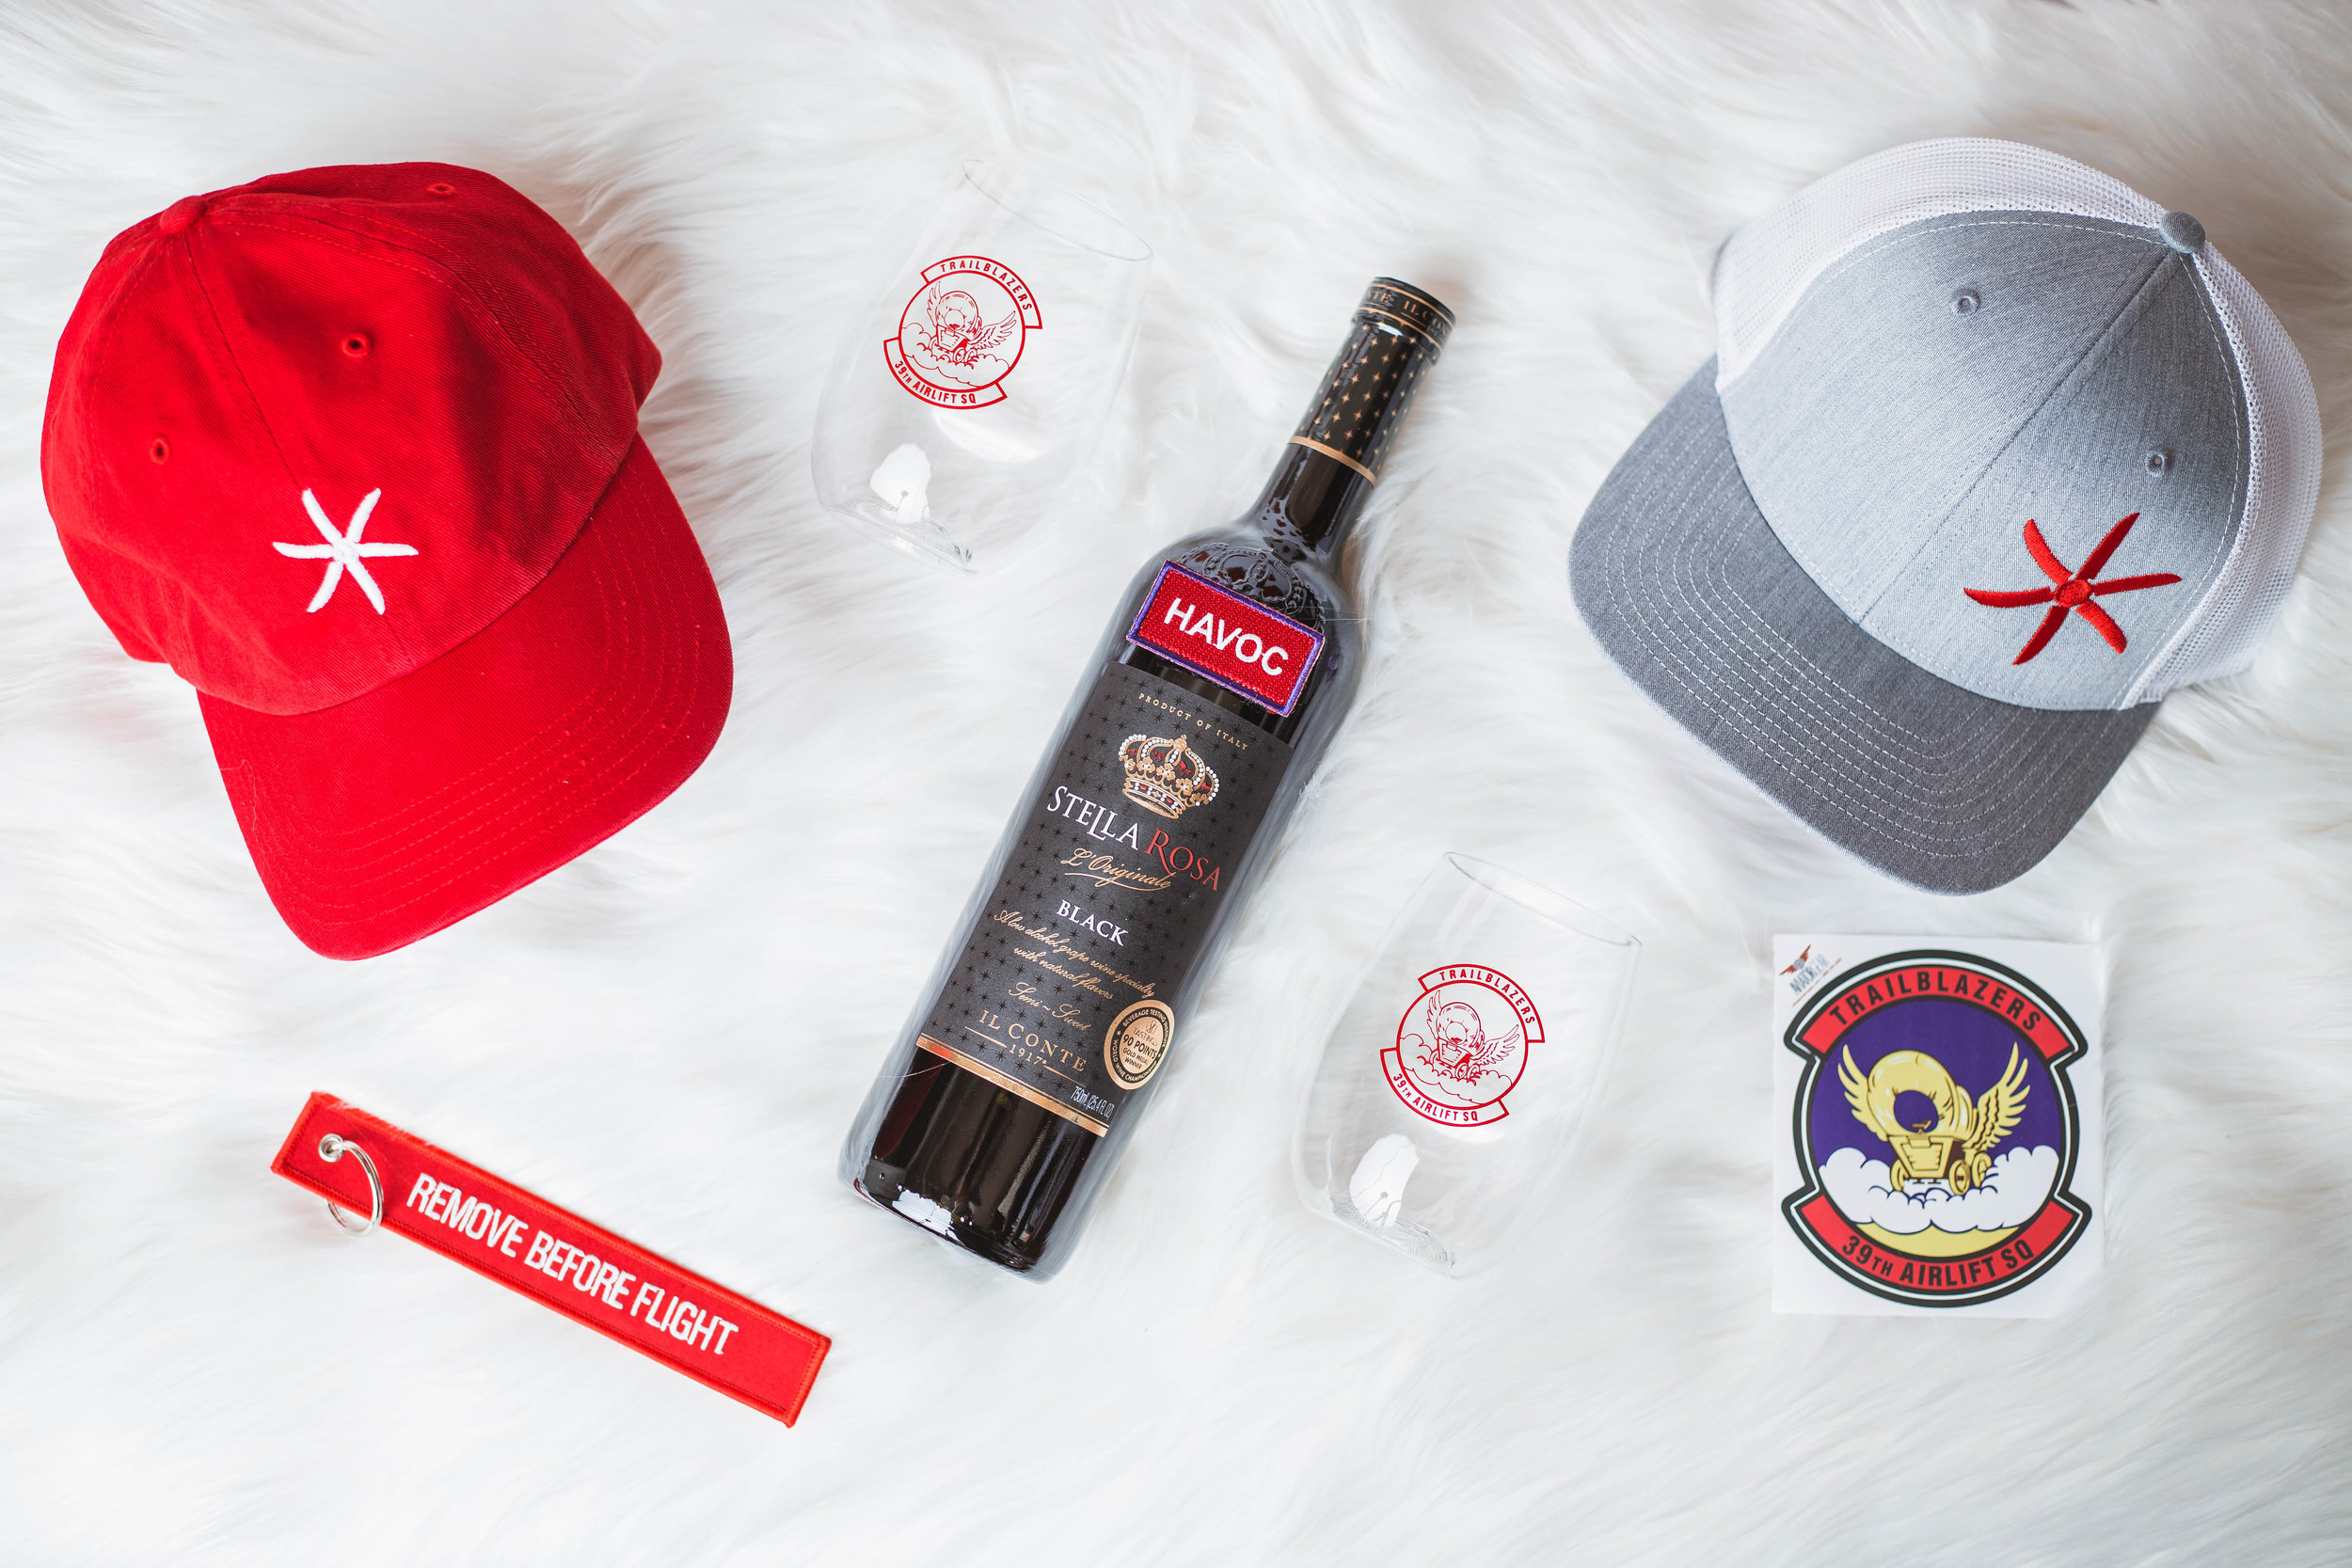 Valentine's Day is around the corner!! Have you bought your loved ones their Trailblazer gear yet?!?!?! (Wine sold separately)